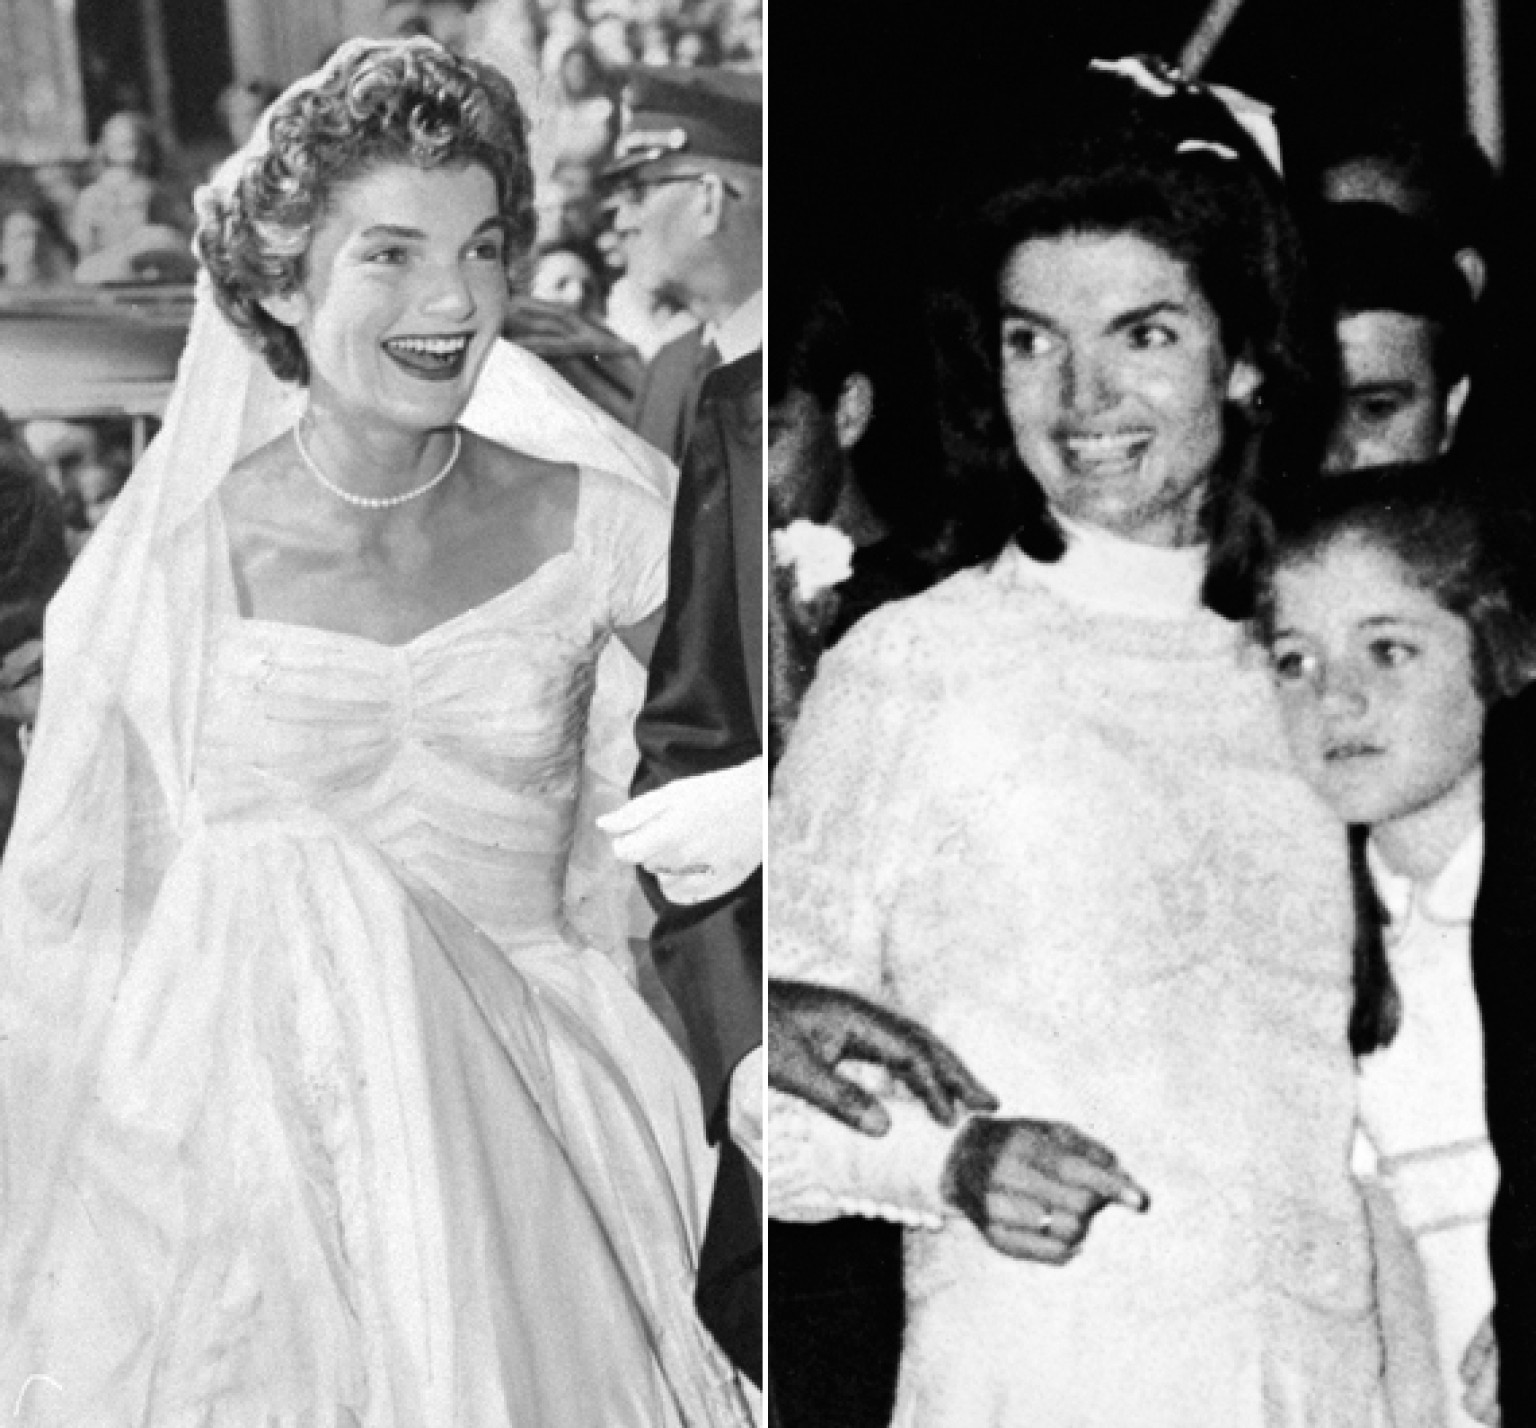 jackie kennedy wedding dress n second marriage wedding dress Jackie Kennedy s Wedding Dresses Still Make Us Swoon Both Of Them HuffPost